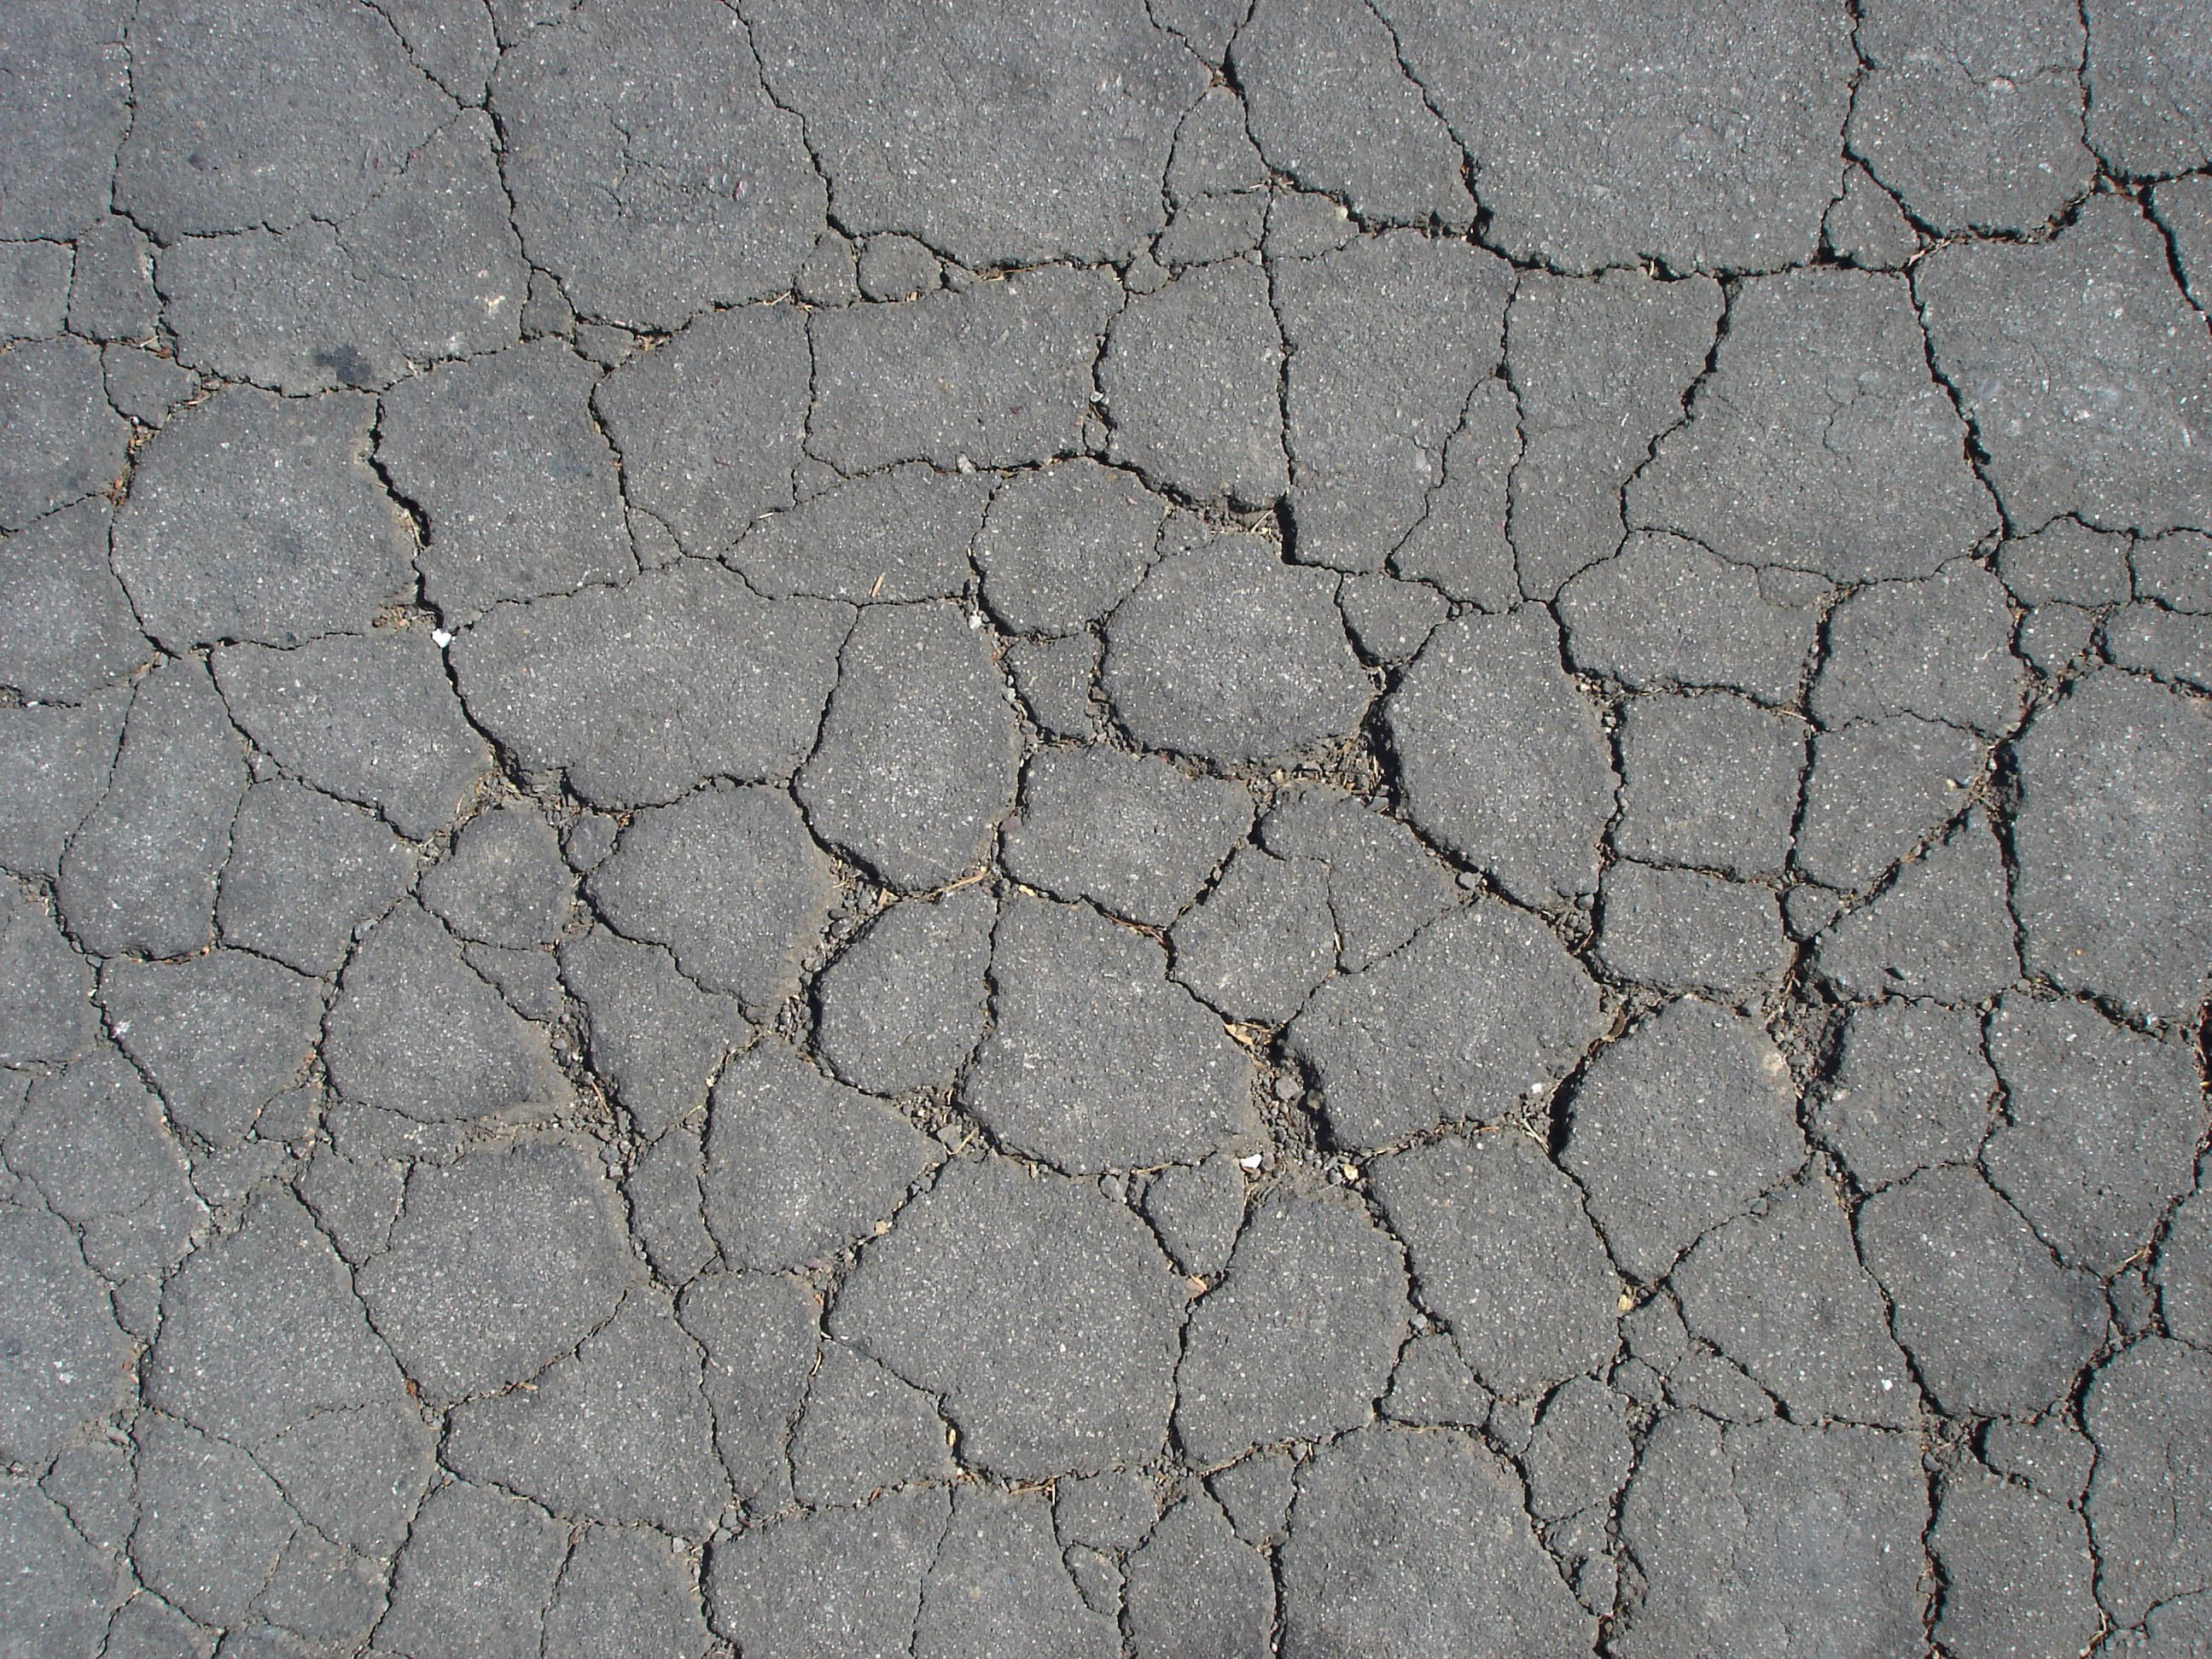 Textures architecture roads roads dirt road texture seamless - Explore Texture Roads And More Image Result For Cracked Road Texture Seamless